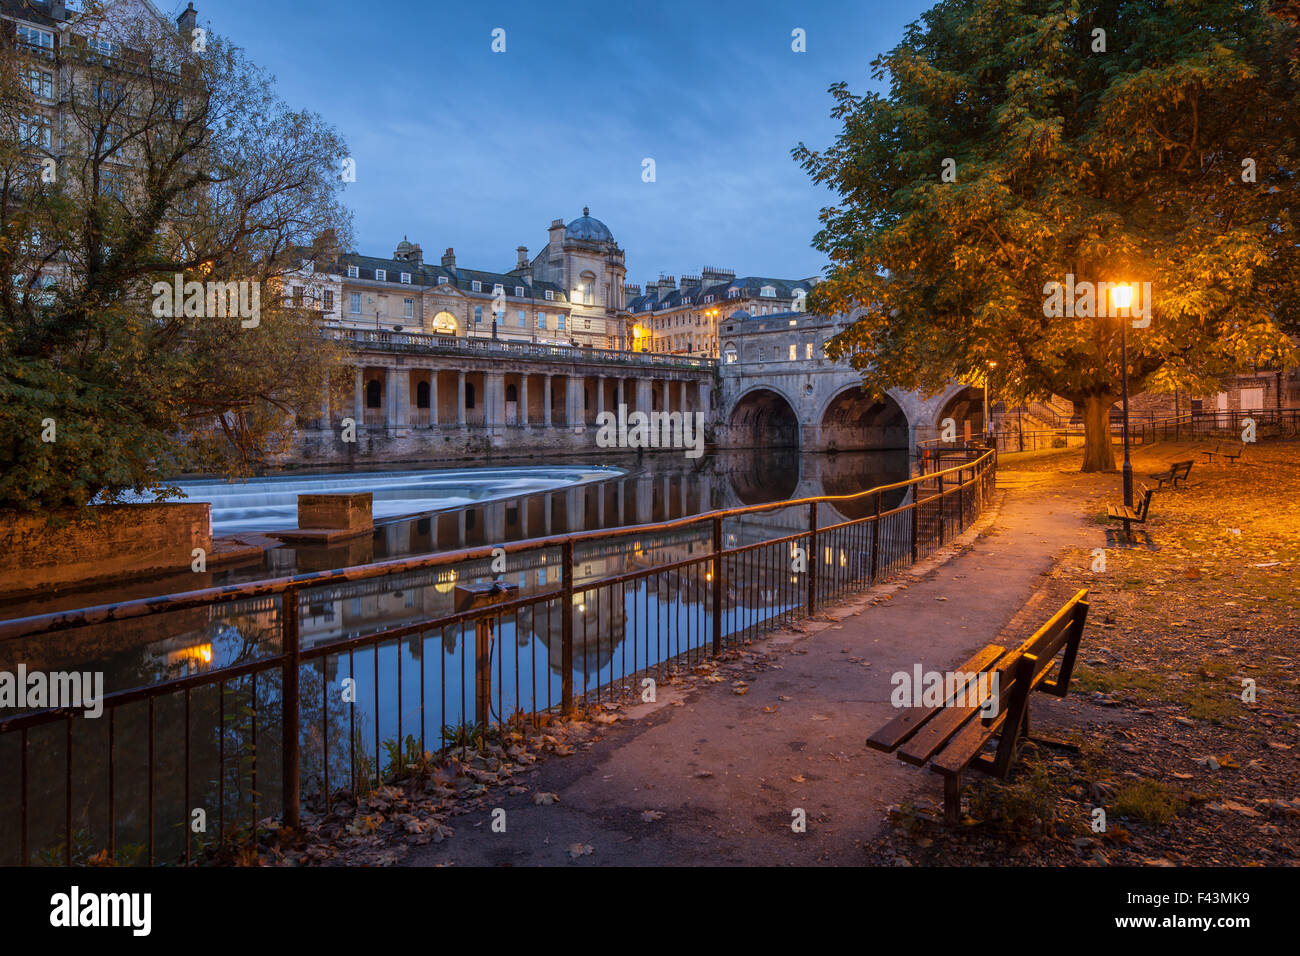 Early autumn morning in Bath, Somerset, England. - Stock Image